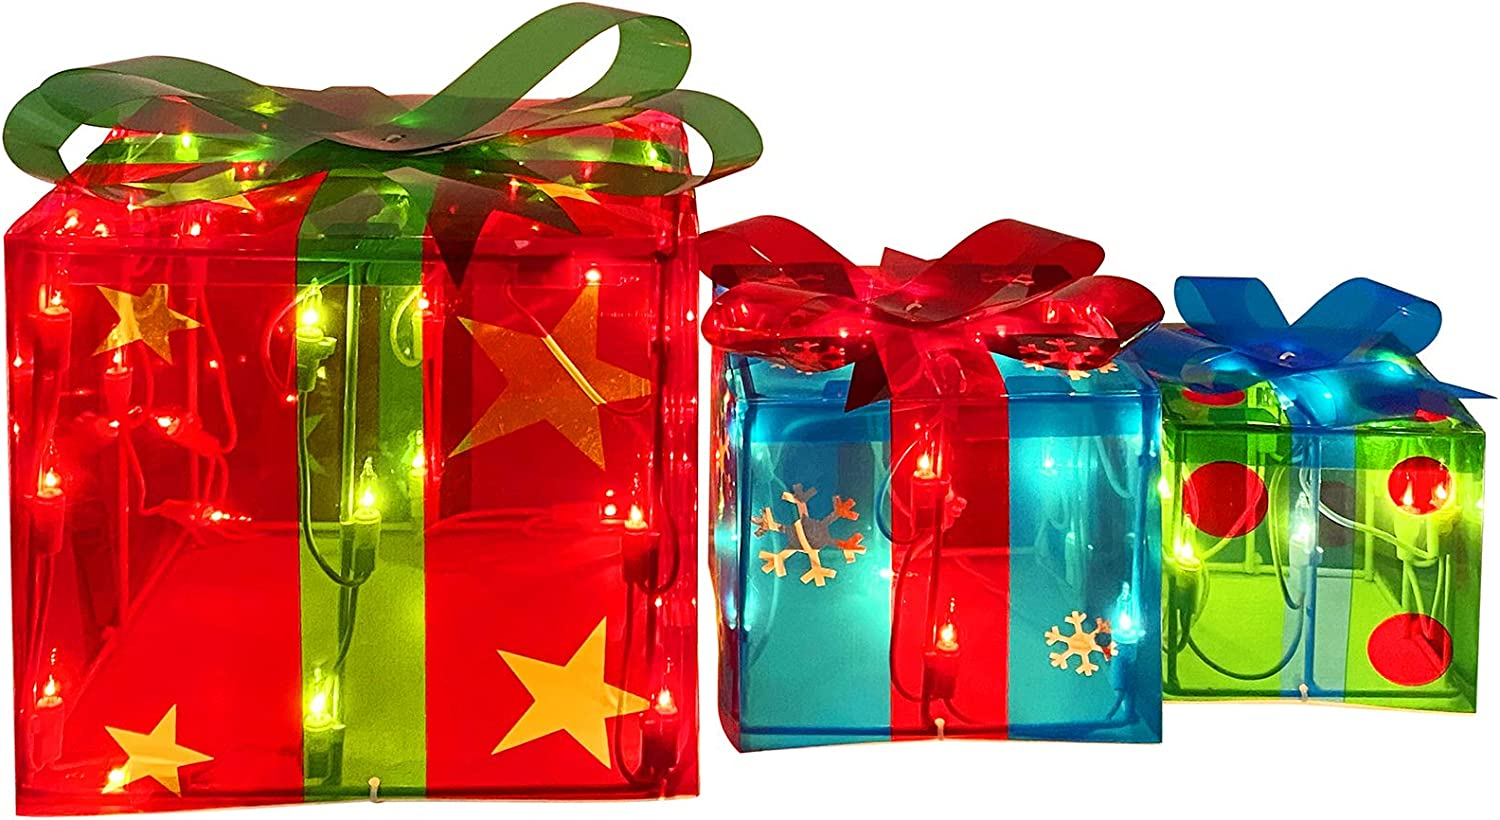 Set of 3 Lighted Gift Boxes for Christmas Decorations, Red Green and Blue Light Gift Boxes, Perfect for Christmas Home&Yard Décor (70 Lights)